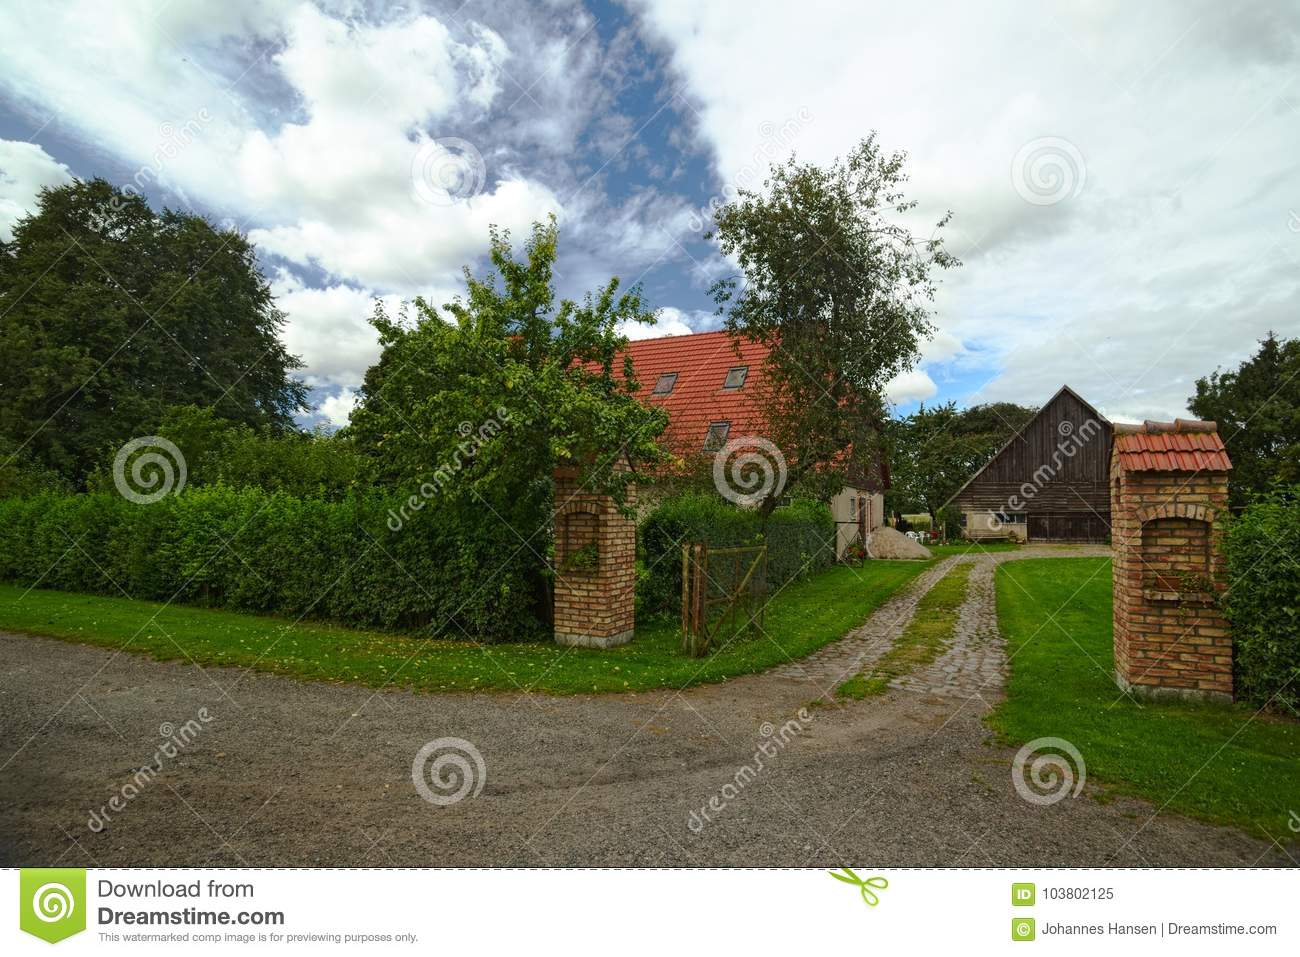 Houses listed as monuments in Kirchdorf, Mecklenburg-Vorpommern, Germany